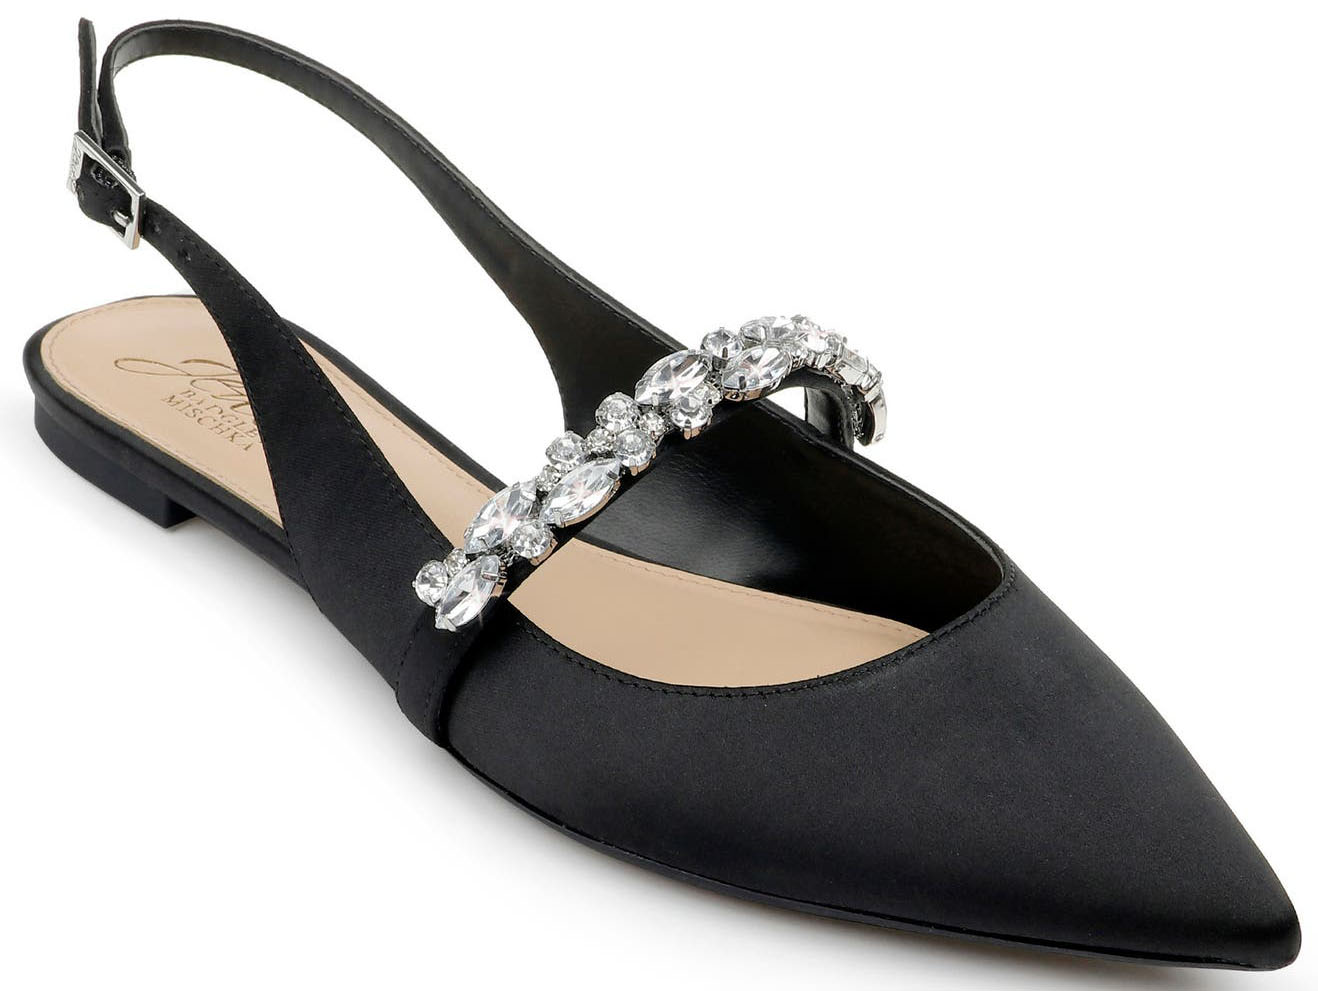 Affordable but classy, the Jewelry Badgley Mischka Bambi has a slingback strap and crystals along the arch strap